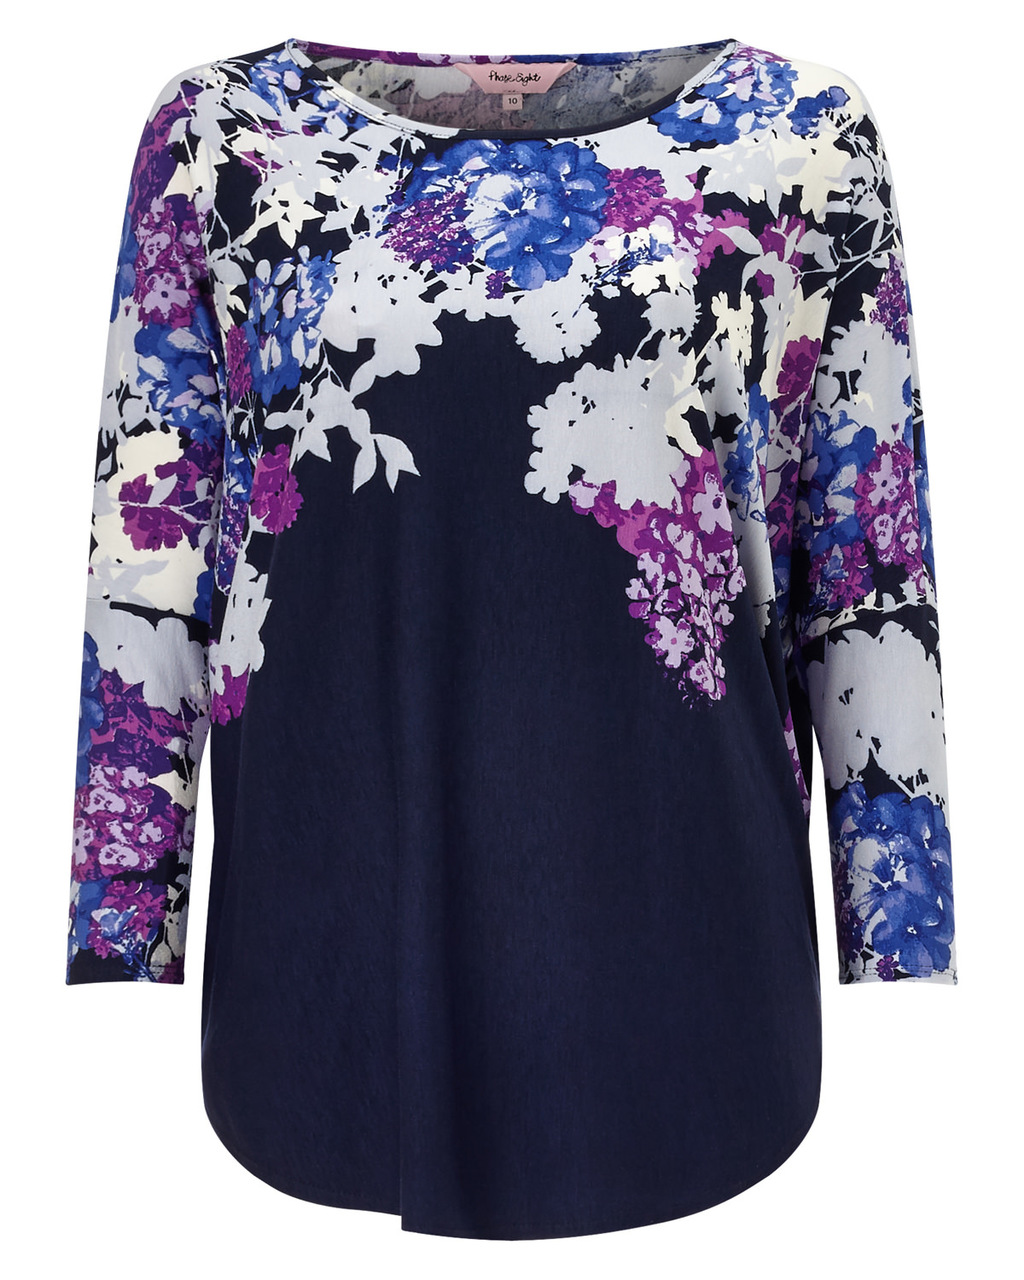 Eleonora Print Top - neckline: round neck; sleeve style: dolman/batwing; secondary colour: aubergine; predominant colour: navy; occasions: casual; length: standard; style: top; fibres: polyester/polyamide - stretch; fit: straight cut; sleeve length: long sleeve; pattern type: fabric; pattern: patterned/print; texture group: jersey - stretchy/drapey; pattern size: big & busy (top); multicoloured: multicoloured; season: a/w 2015; wardrobe: highlight